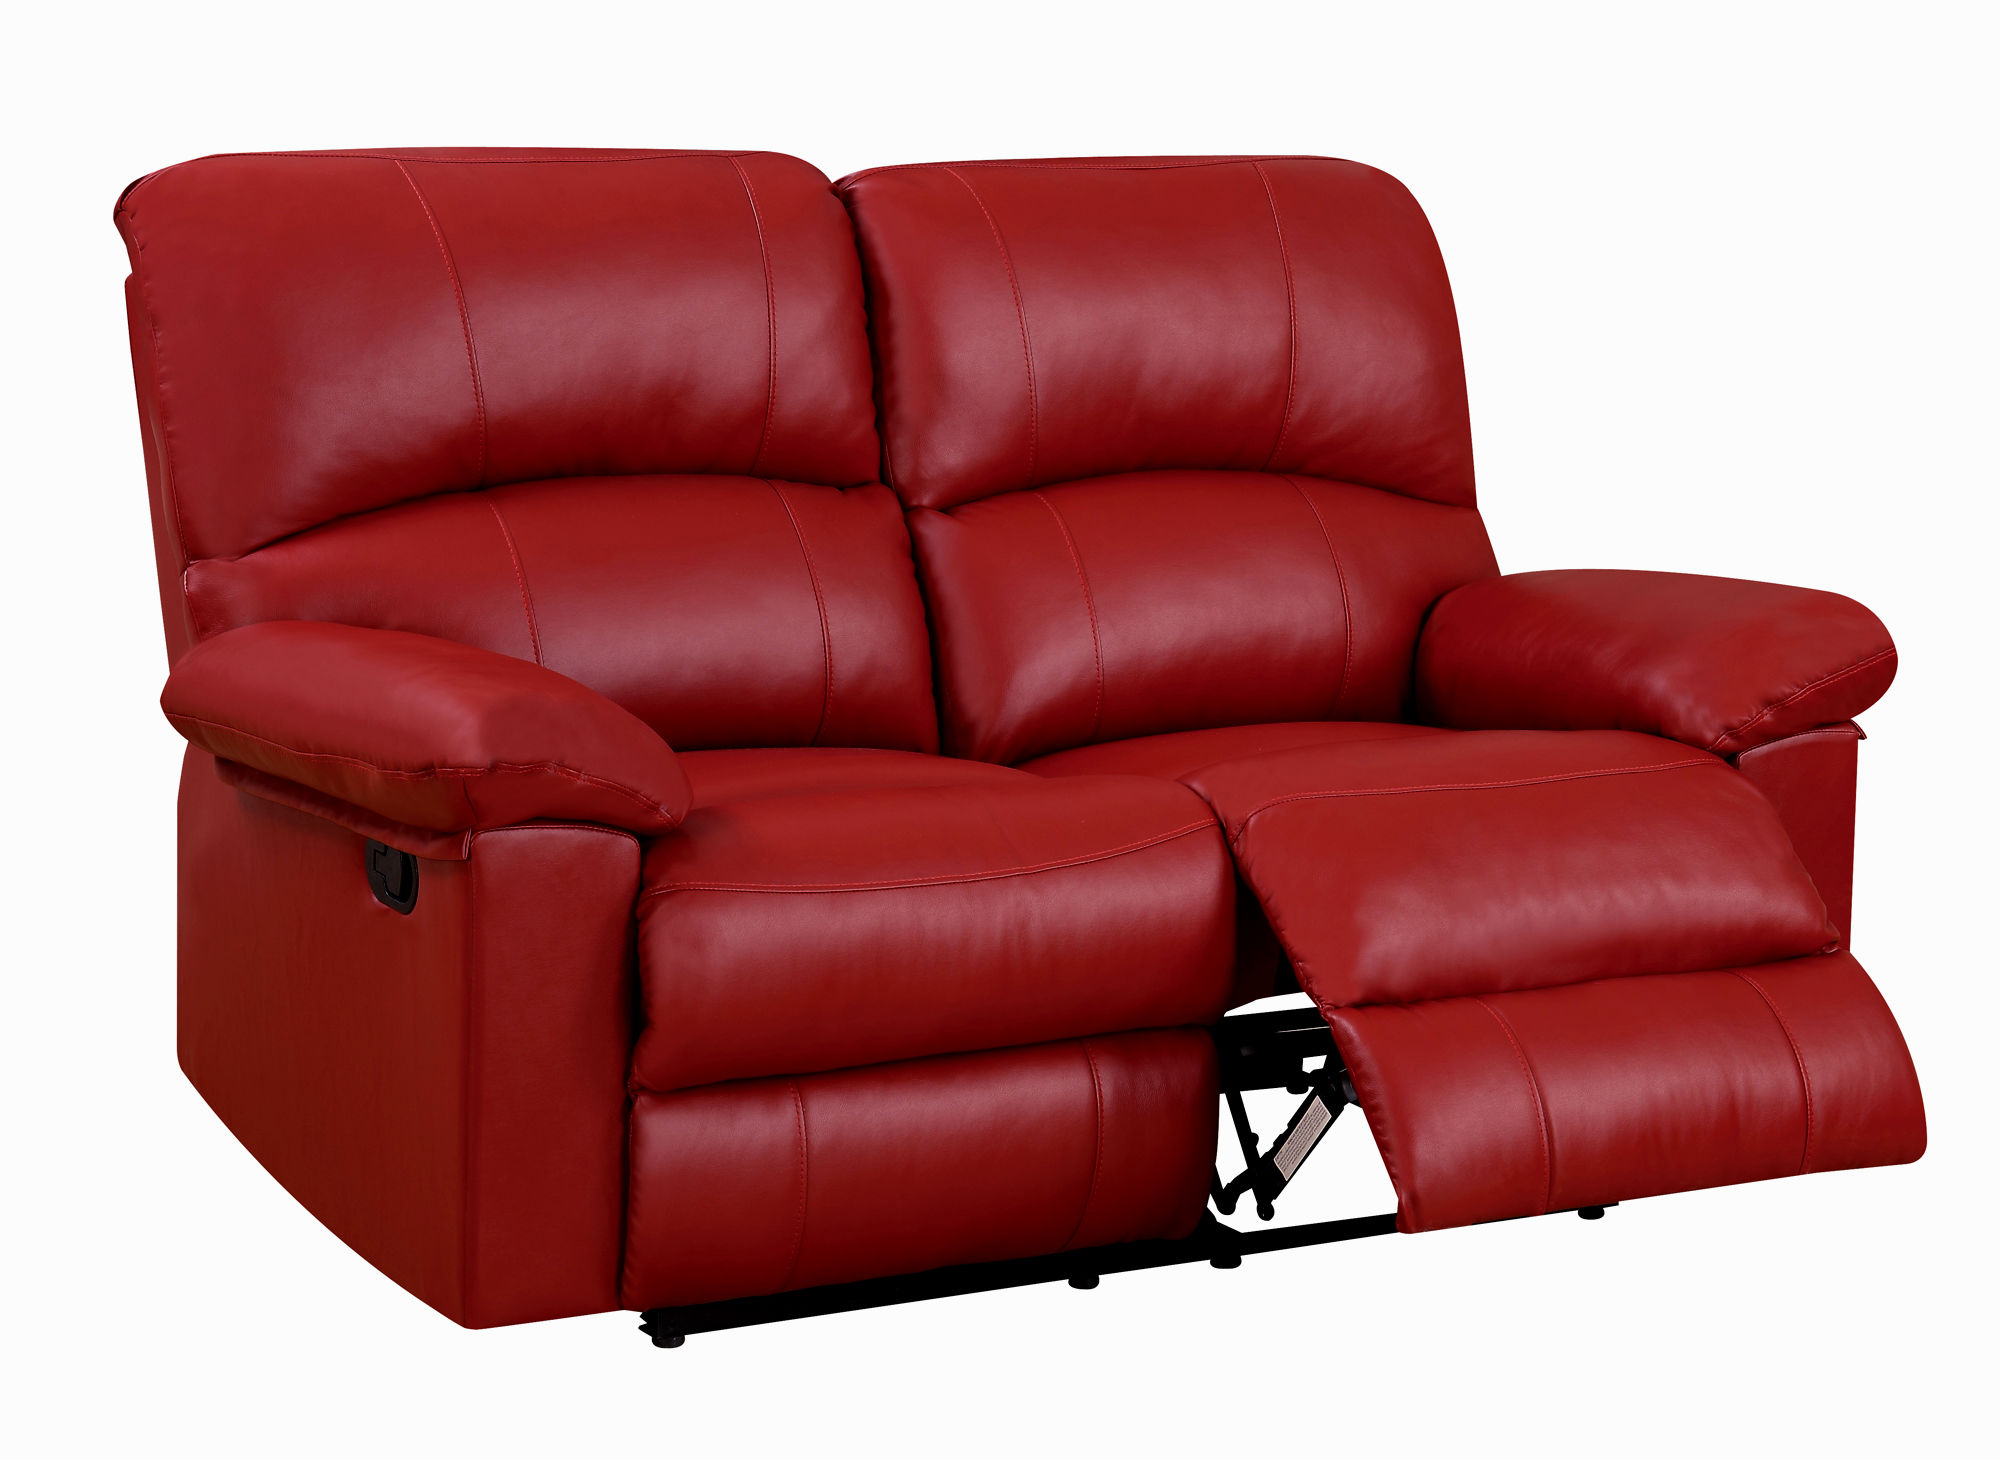 modern reclining sofa and loveseat design-New Reclining sofa and Loveseat Pattern